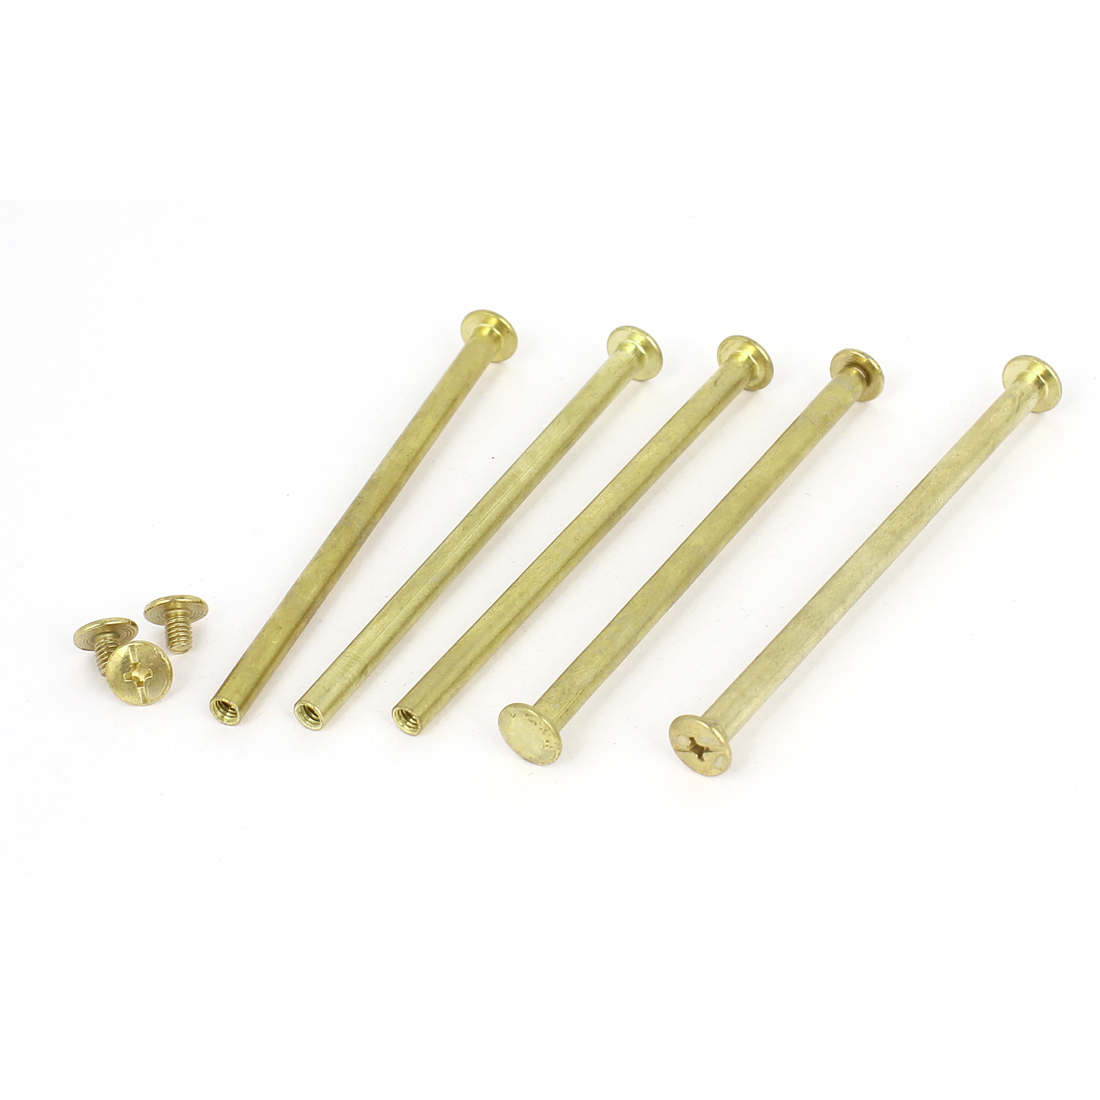 Brass Plated 5x90mm Binding Chicago Screw Post 5pcs for Leather Scrapbook